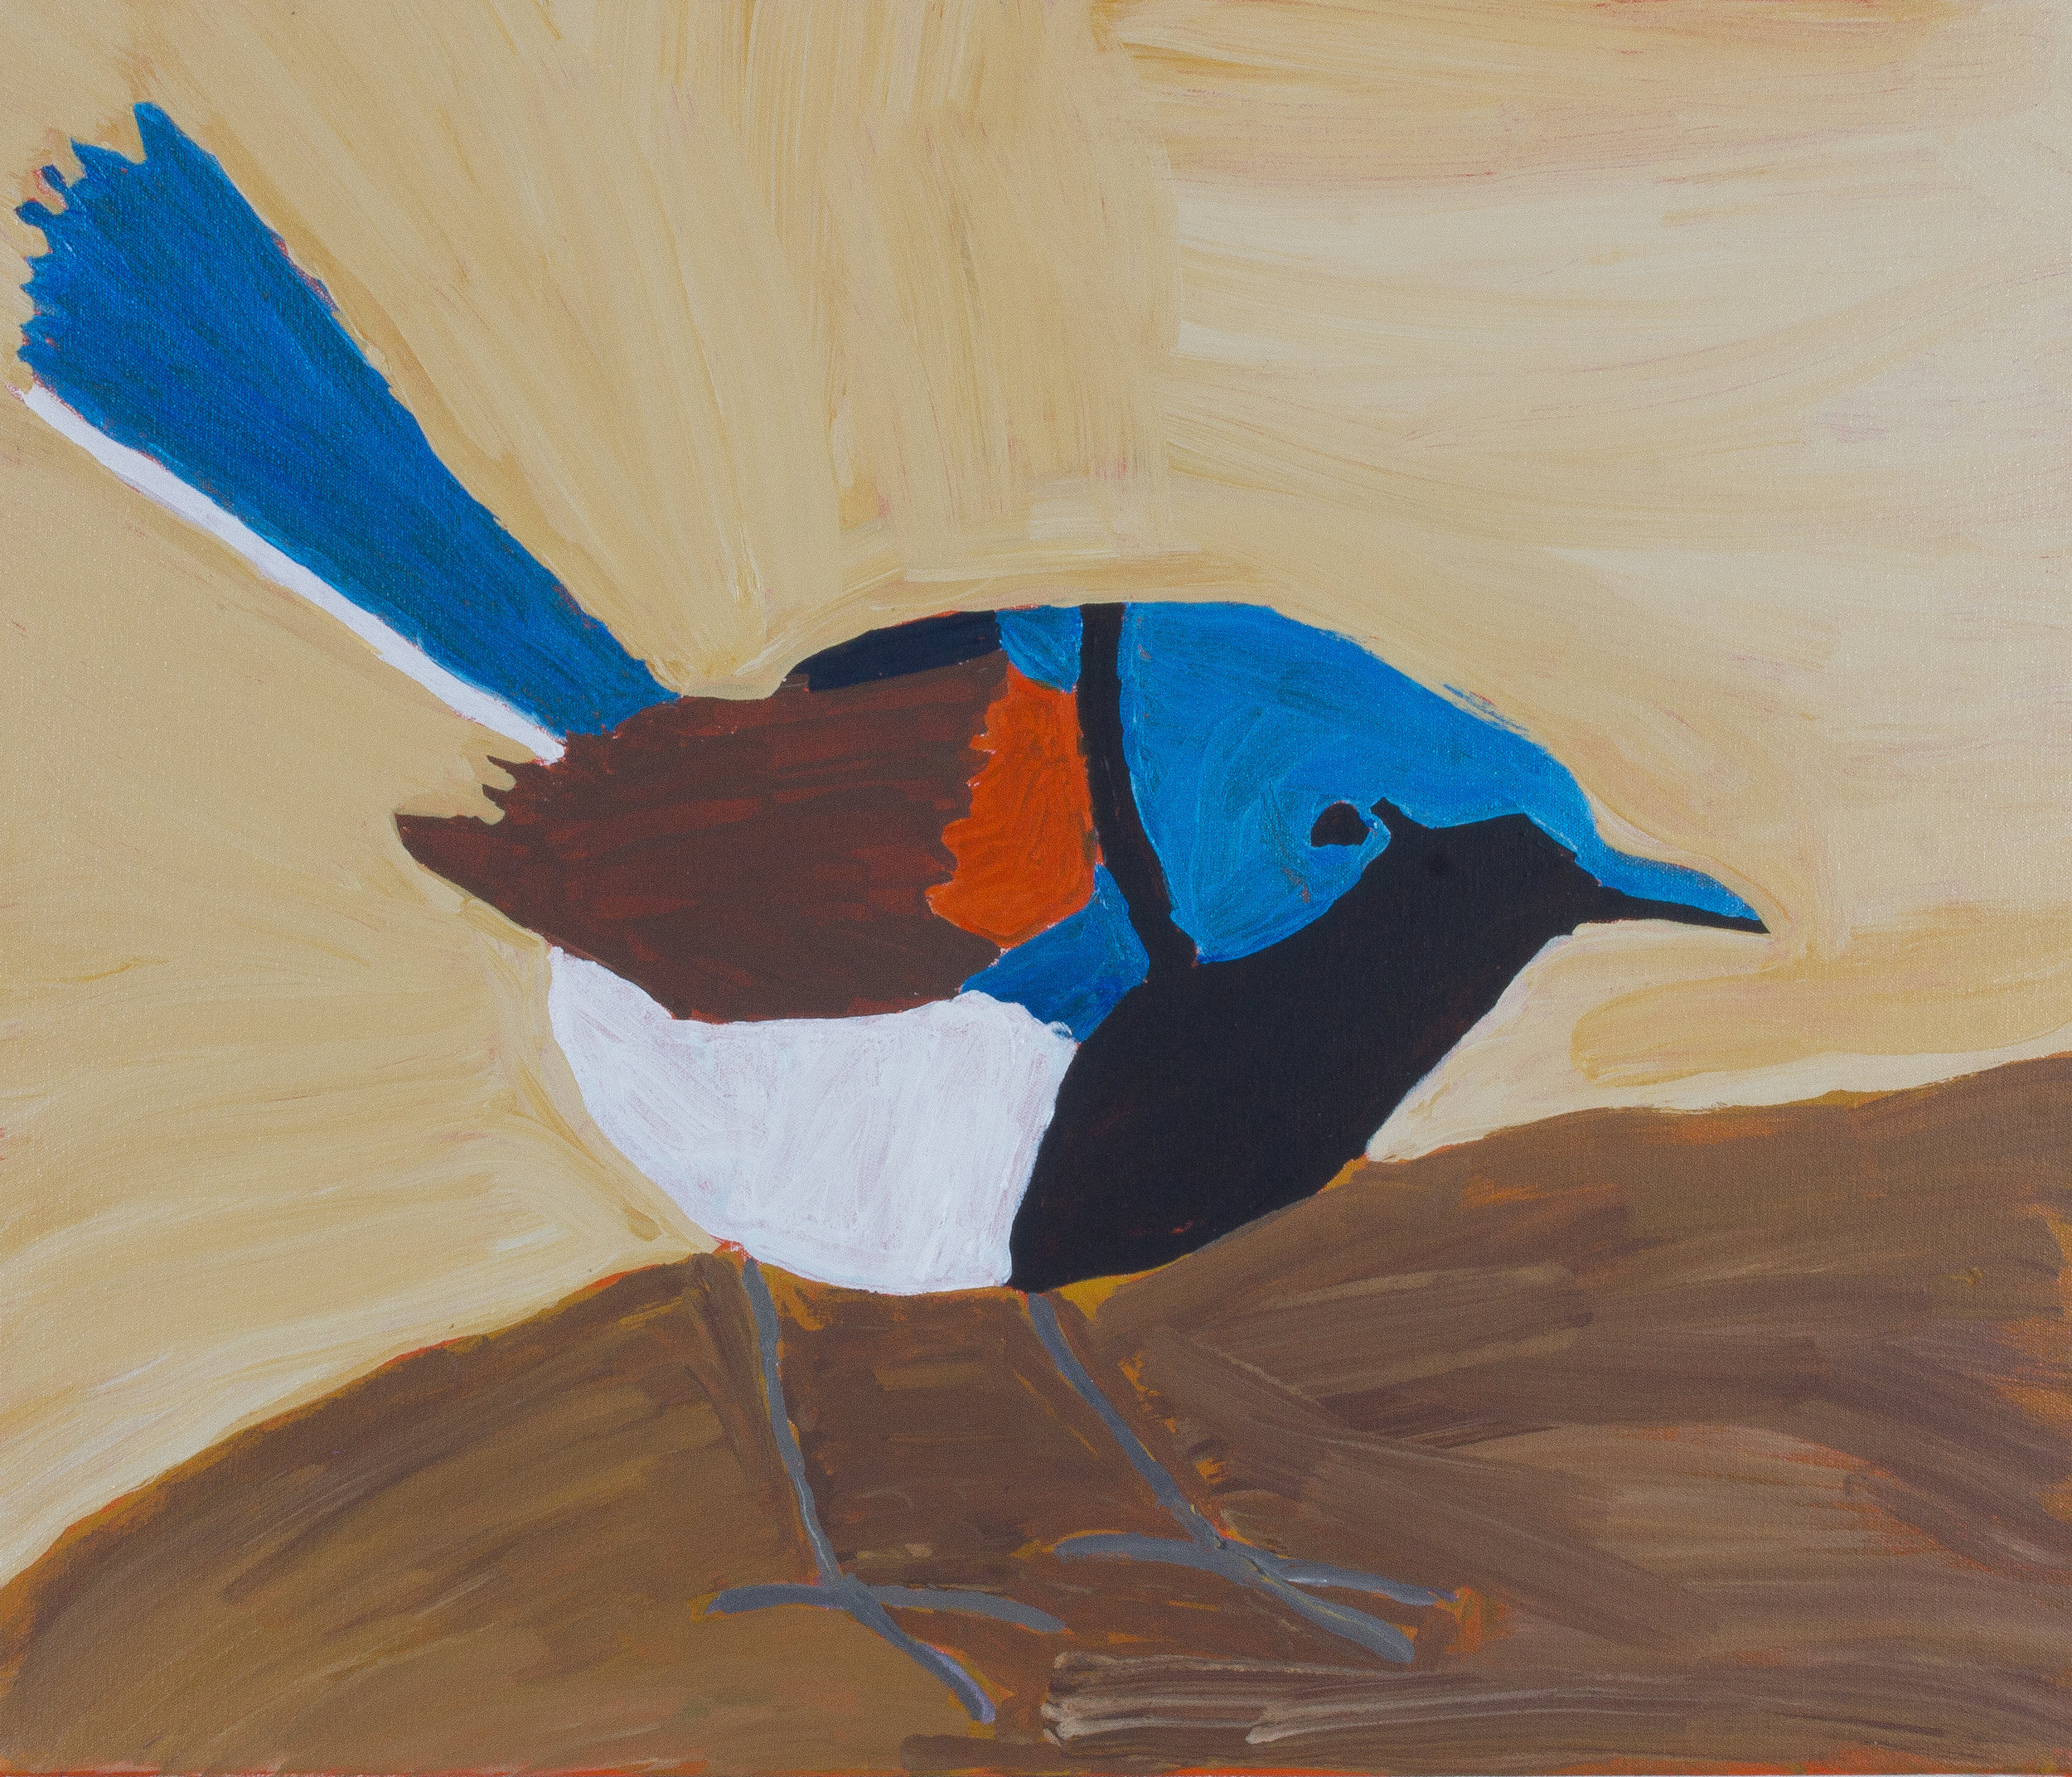 "Nyangulya Katie Nalgood  Fairy Wren  28 x 24"" (71 x 61 cm) acrylic on linen Spinifex Hills Artists Catalog #18-488  SOLD"